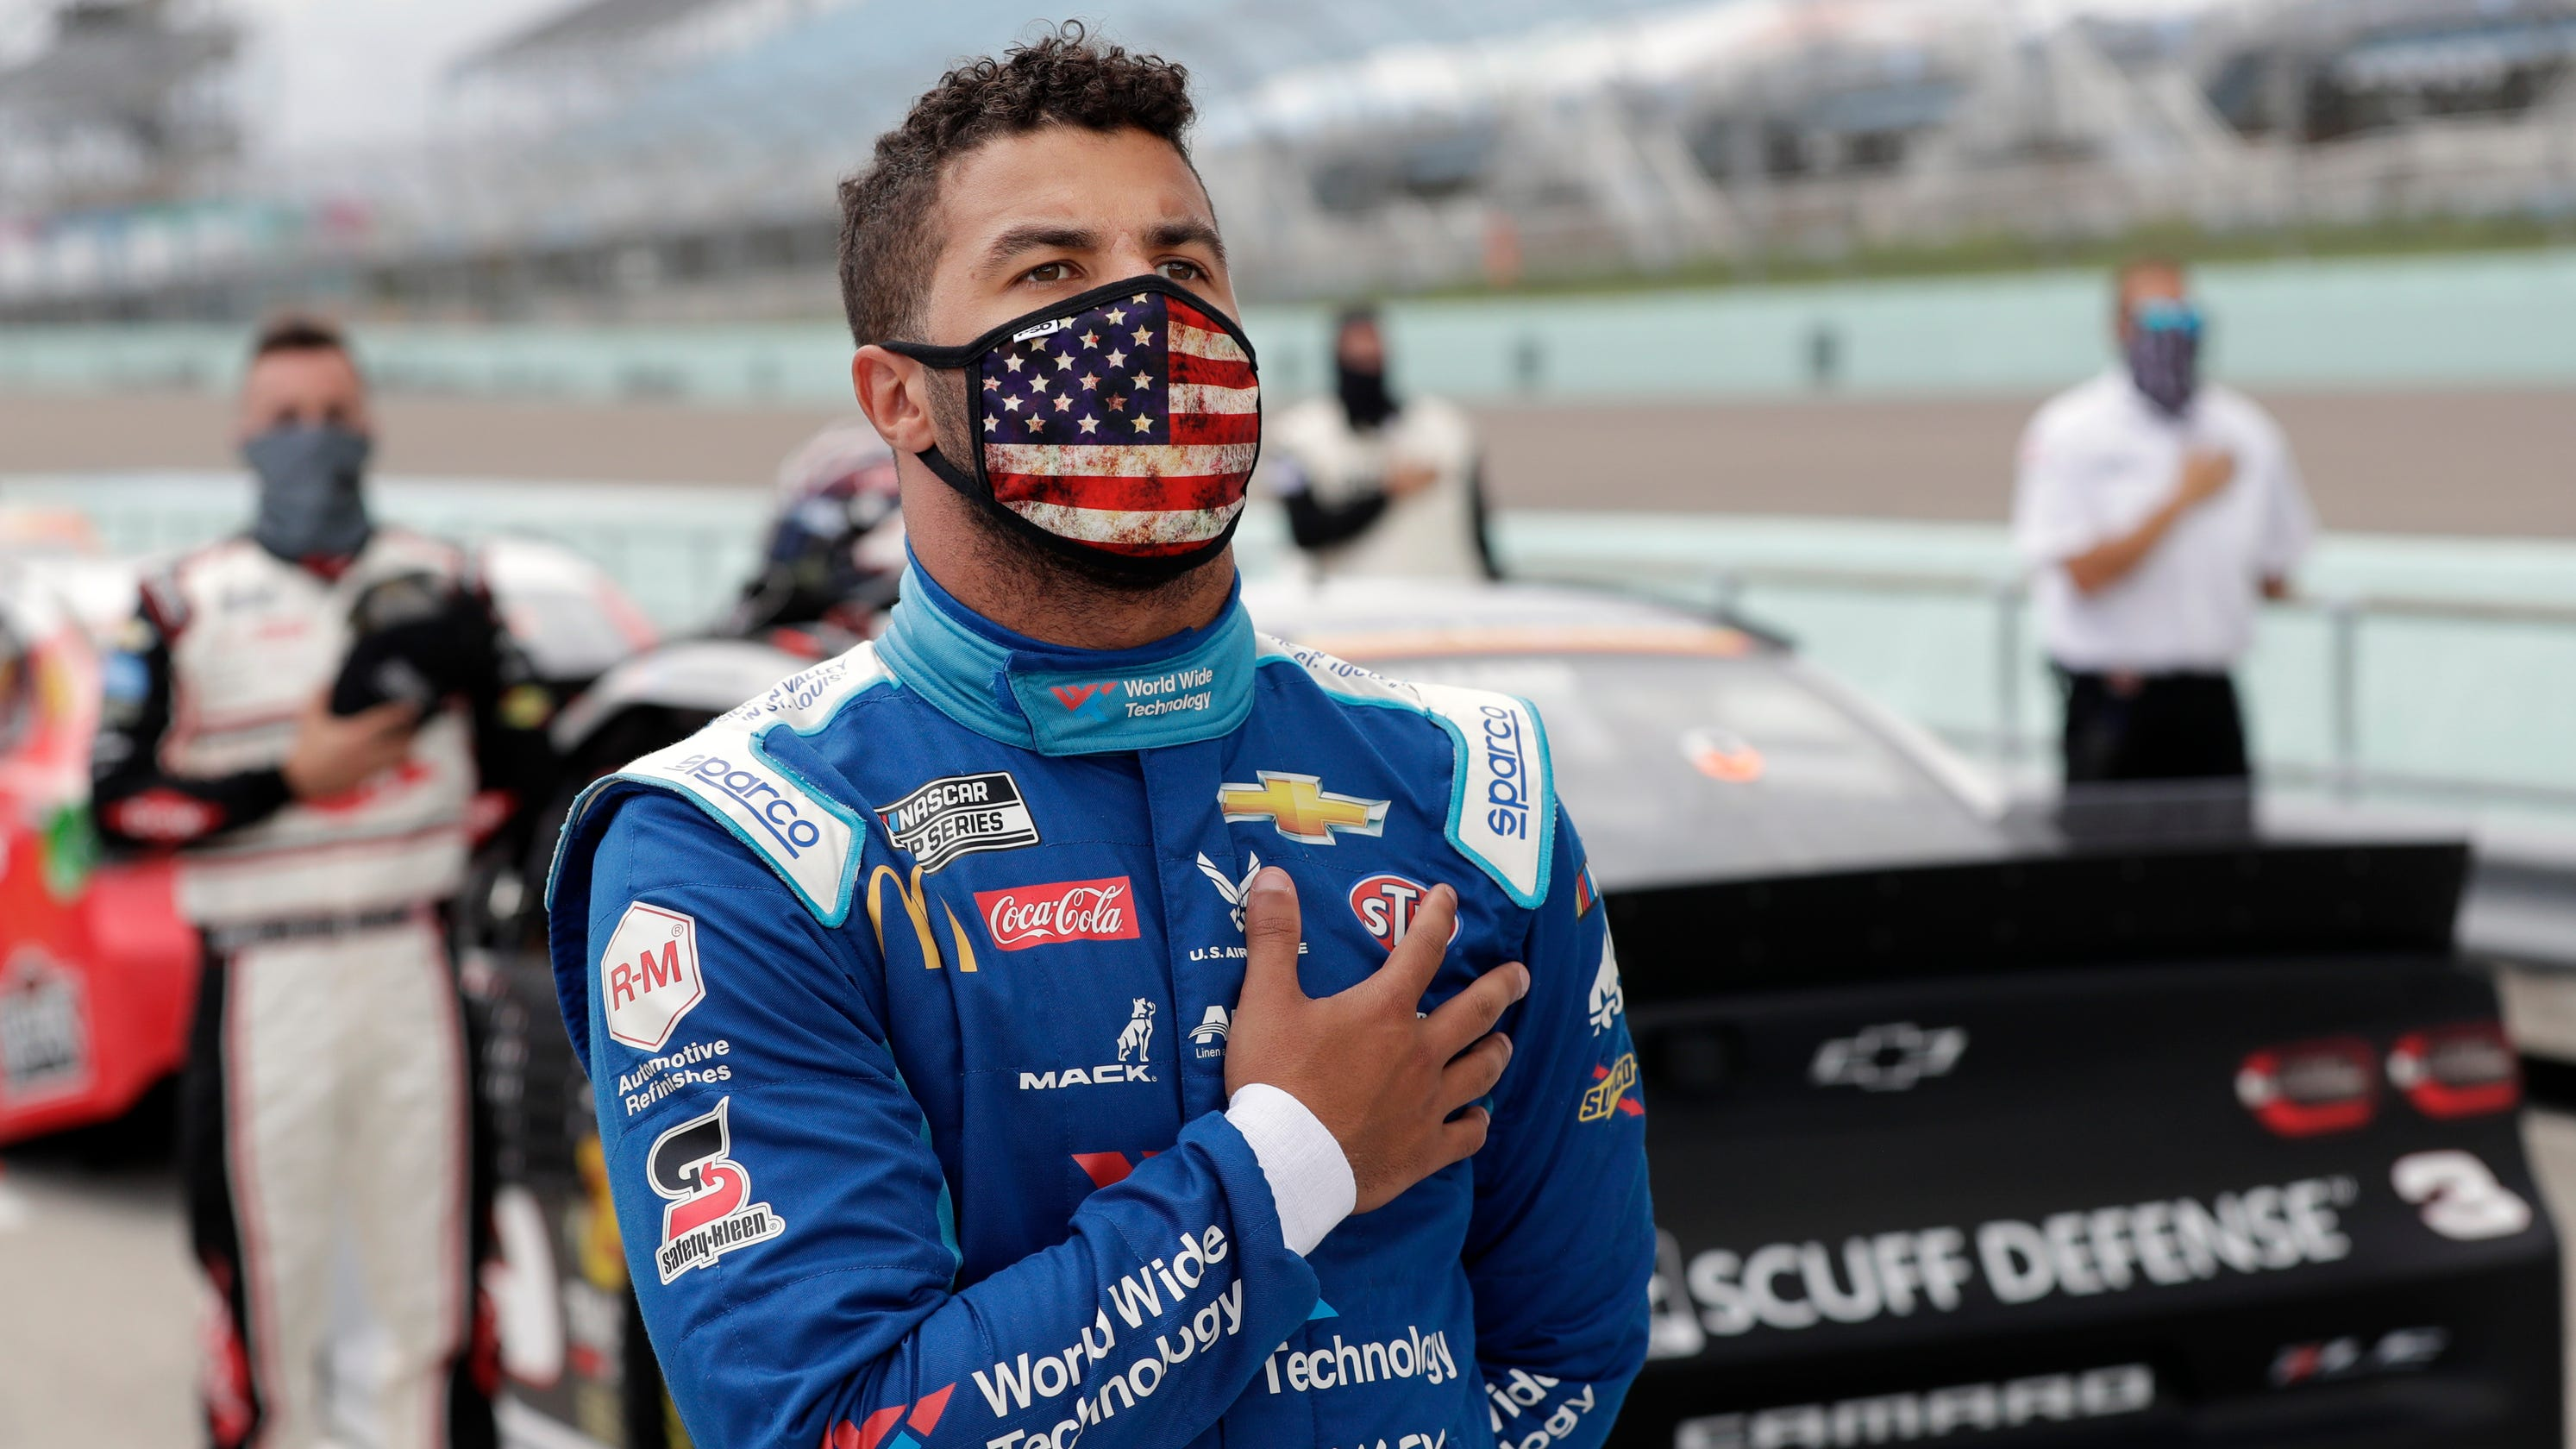 Bubba Wallace reacts to FBI investigation: 'It's a straight-up noose'